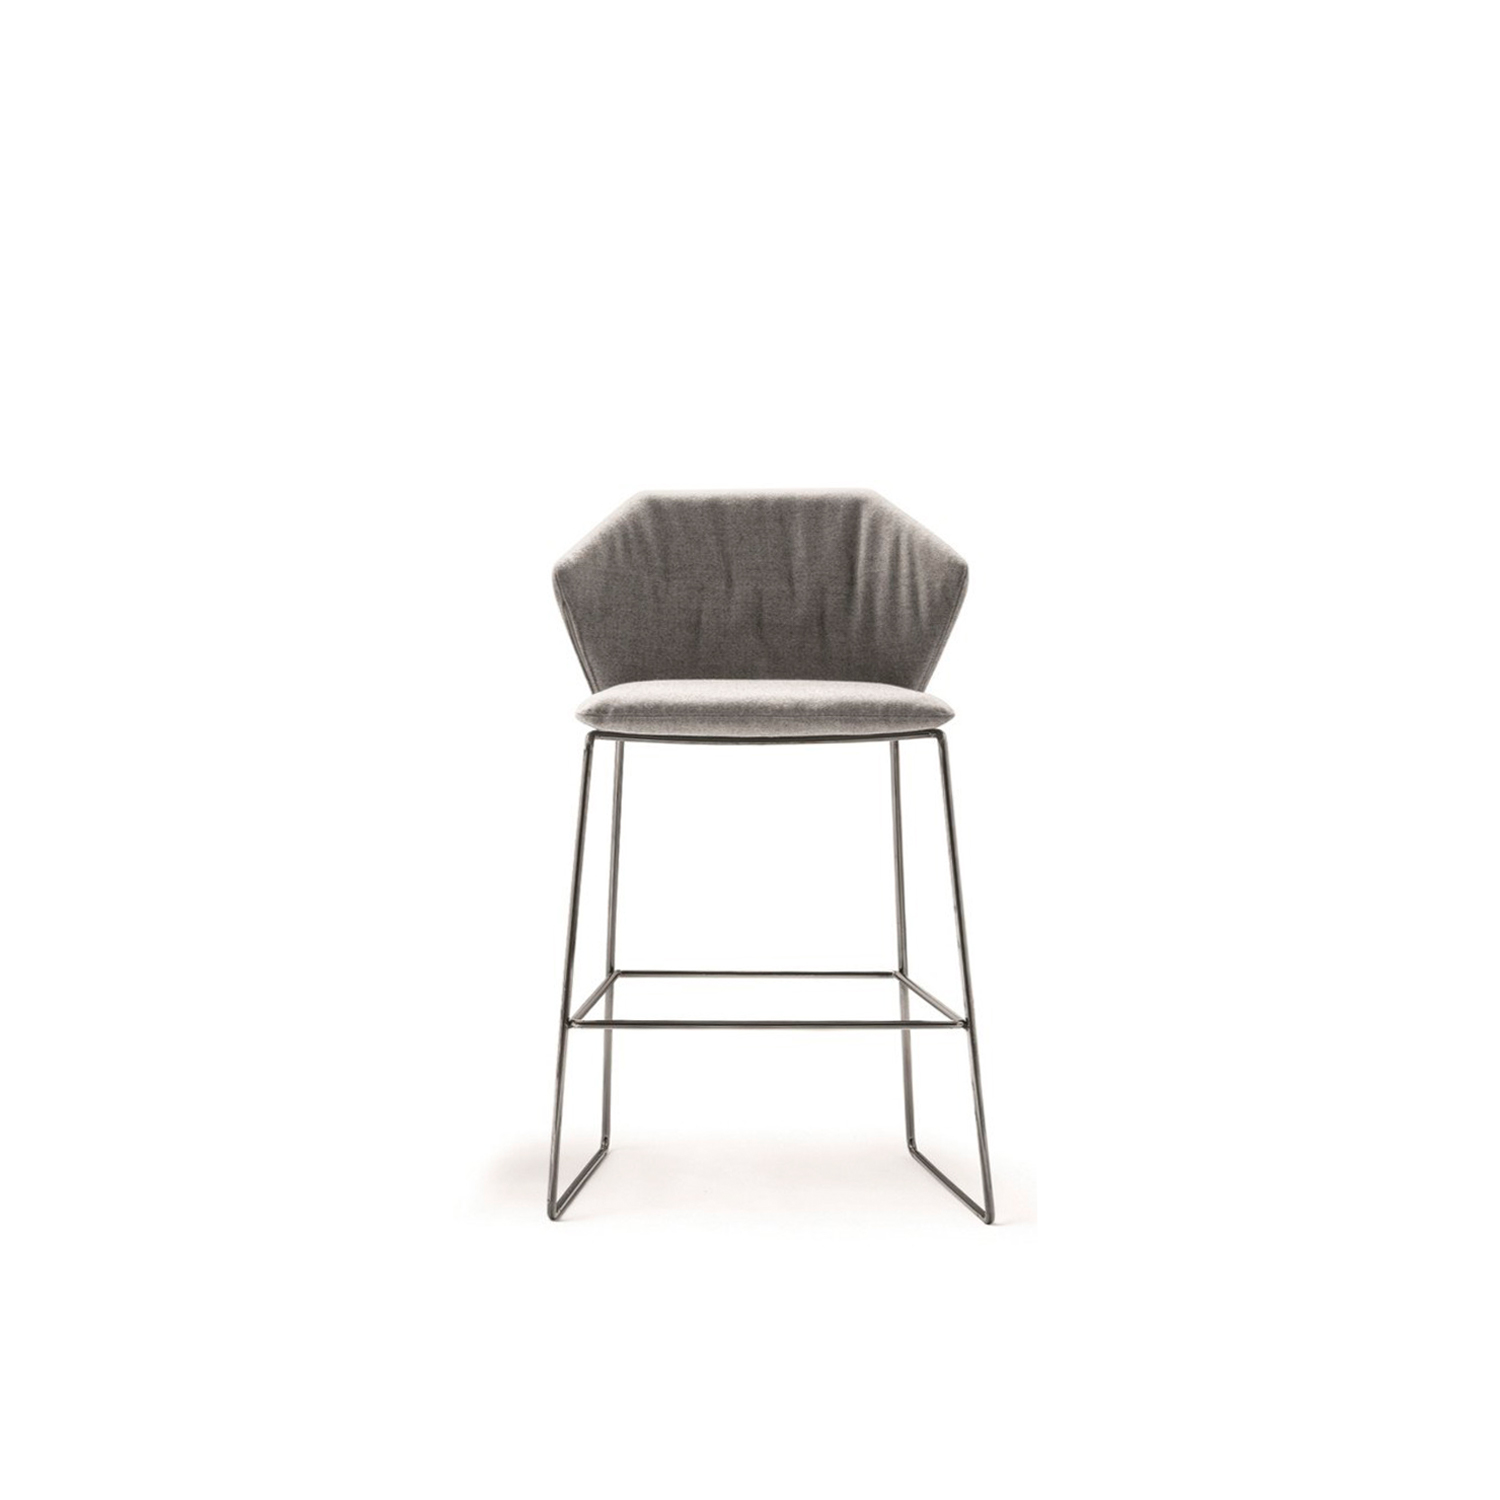 New York Stool - The New York collection expands its product range to welcome a line of stools, designed to be the vertical development of the series without armrests. The result highlights the flexible structure of the seating, while still featuring the comfortable padding that is embellished with compact tone-on-tone quilting this time. Available in chrome-plated or varnished finishes. Completely removable.  Additional removable cover is available, please enquire for prices.  Materials Structure in 11 mm wire drawn. The seat is in metal sheet. Glossy chrome or painted finish. Velfodera coating on resin 280gr/sqm. Seat cushion in polyurethane foam covered with white cotton on 380gr/sqm polyester fiber. | Matter of Stuff